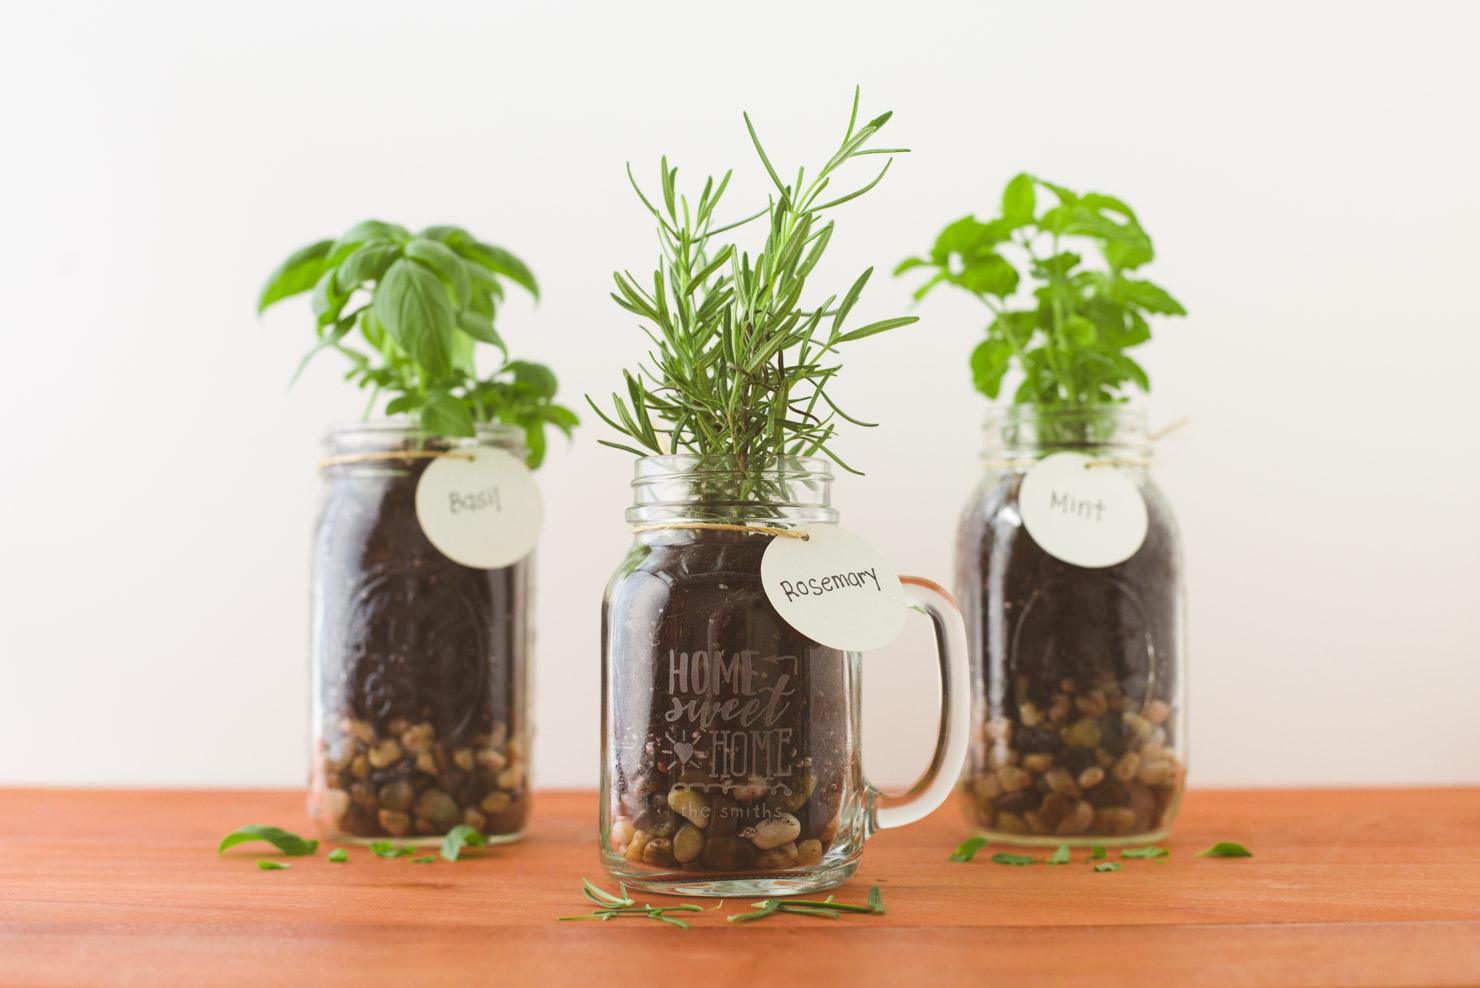 herb garden inside mason jars labeled basil, rosemary and mint